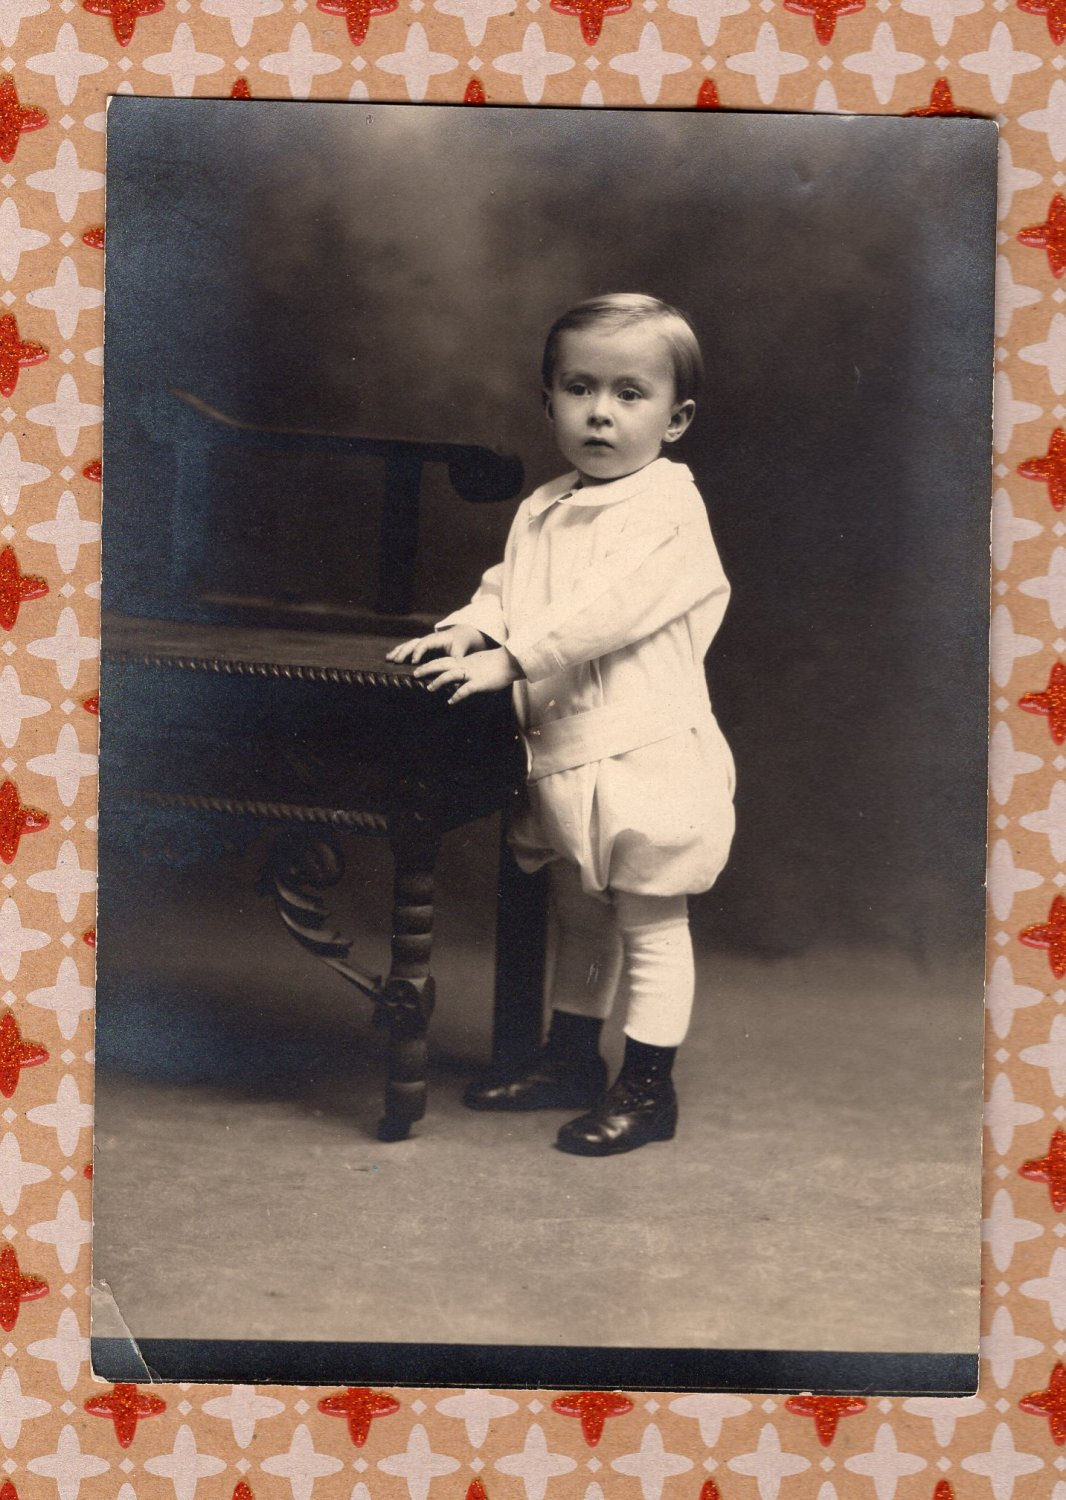 Baby Boy / Toddler With Table Antique / Vintage Black & White Portrait Picture